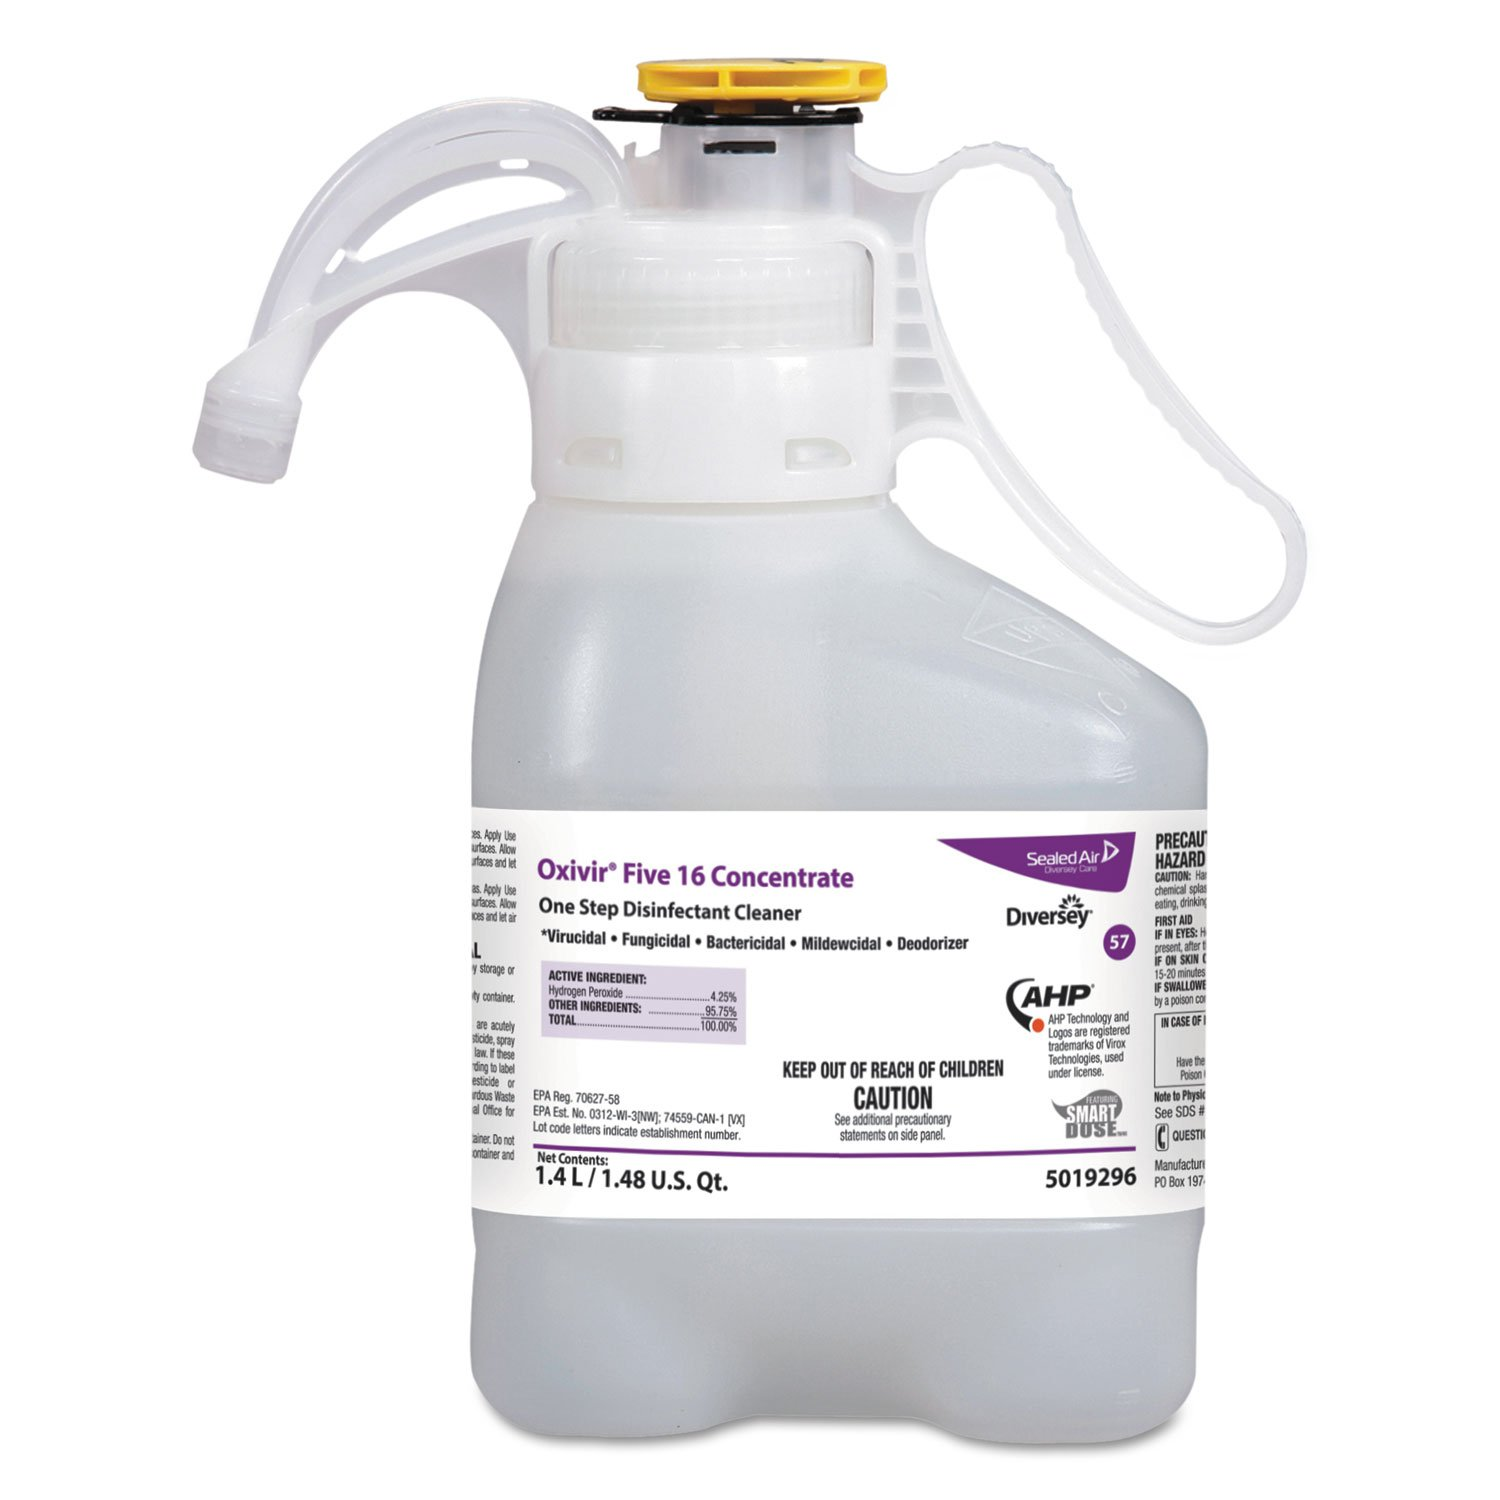 Diversey 5019296 Oxivir Disinfectant Cleaner, Hospital SmartDose Diversey Oxivir Disinfectant Cleaner,